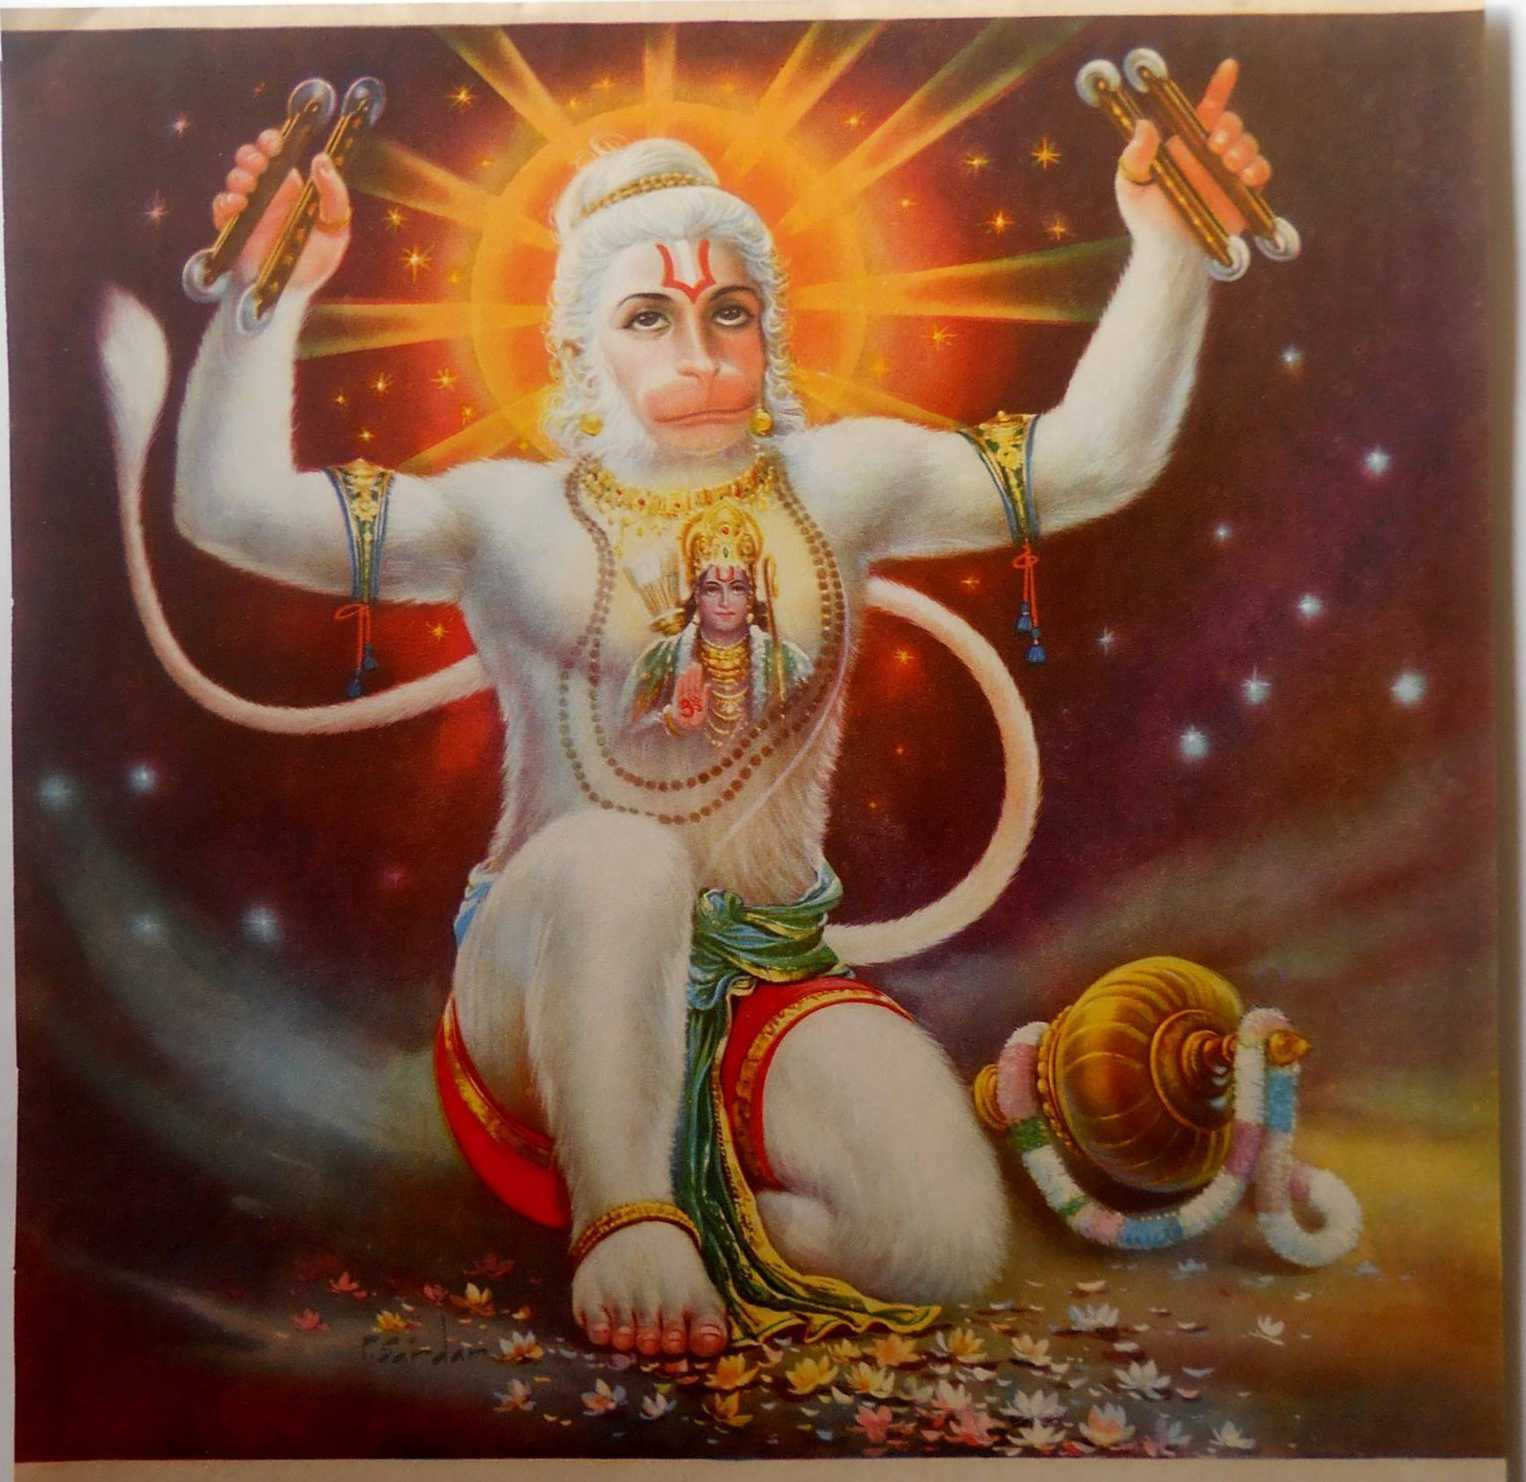 The Hanuman Mantra – Any work to be done immediately which gets